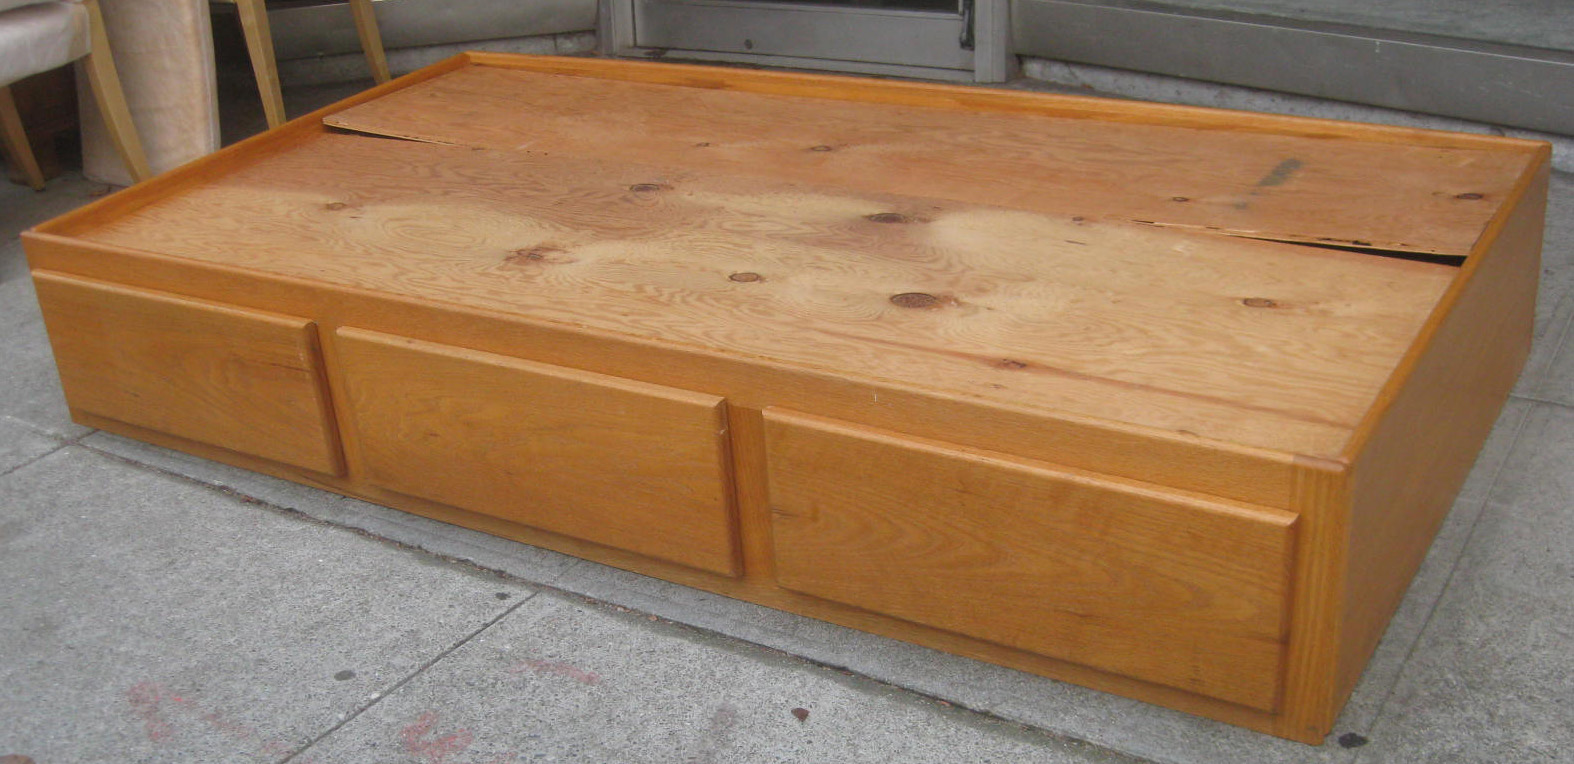 SOLD - Twin Pine Captain's Bed - $90